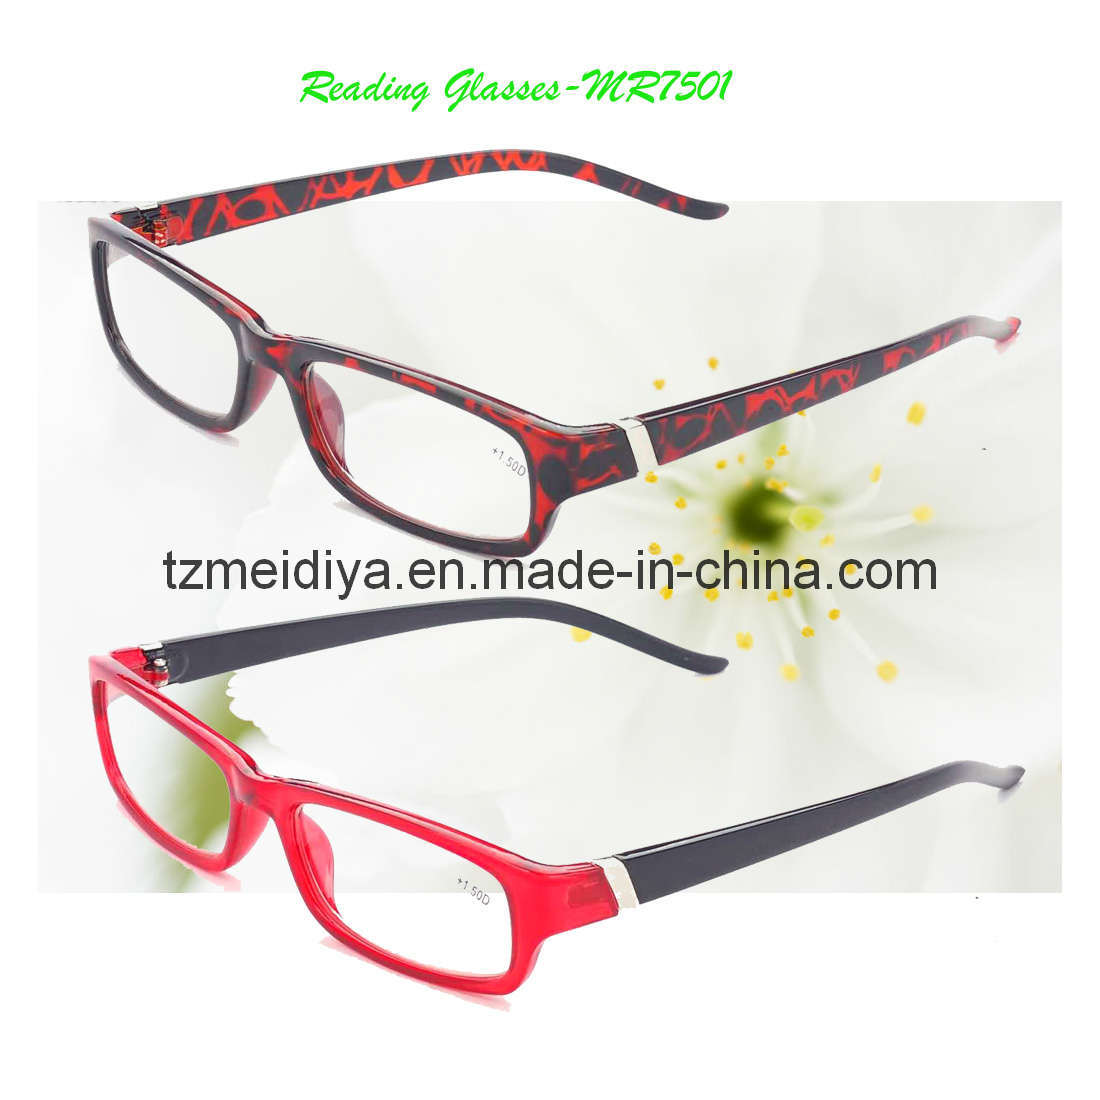 china 1 00 to 4 00d reading glasses mr7501 china